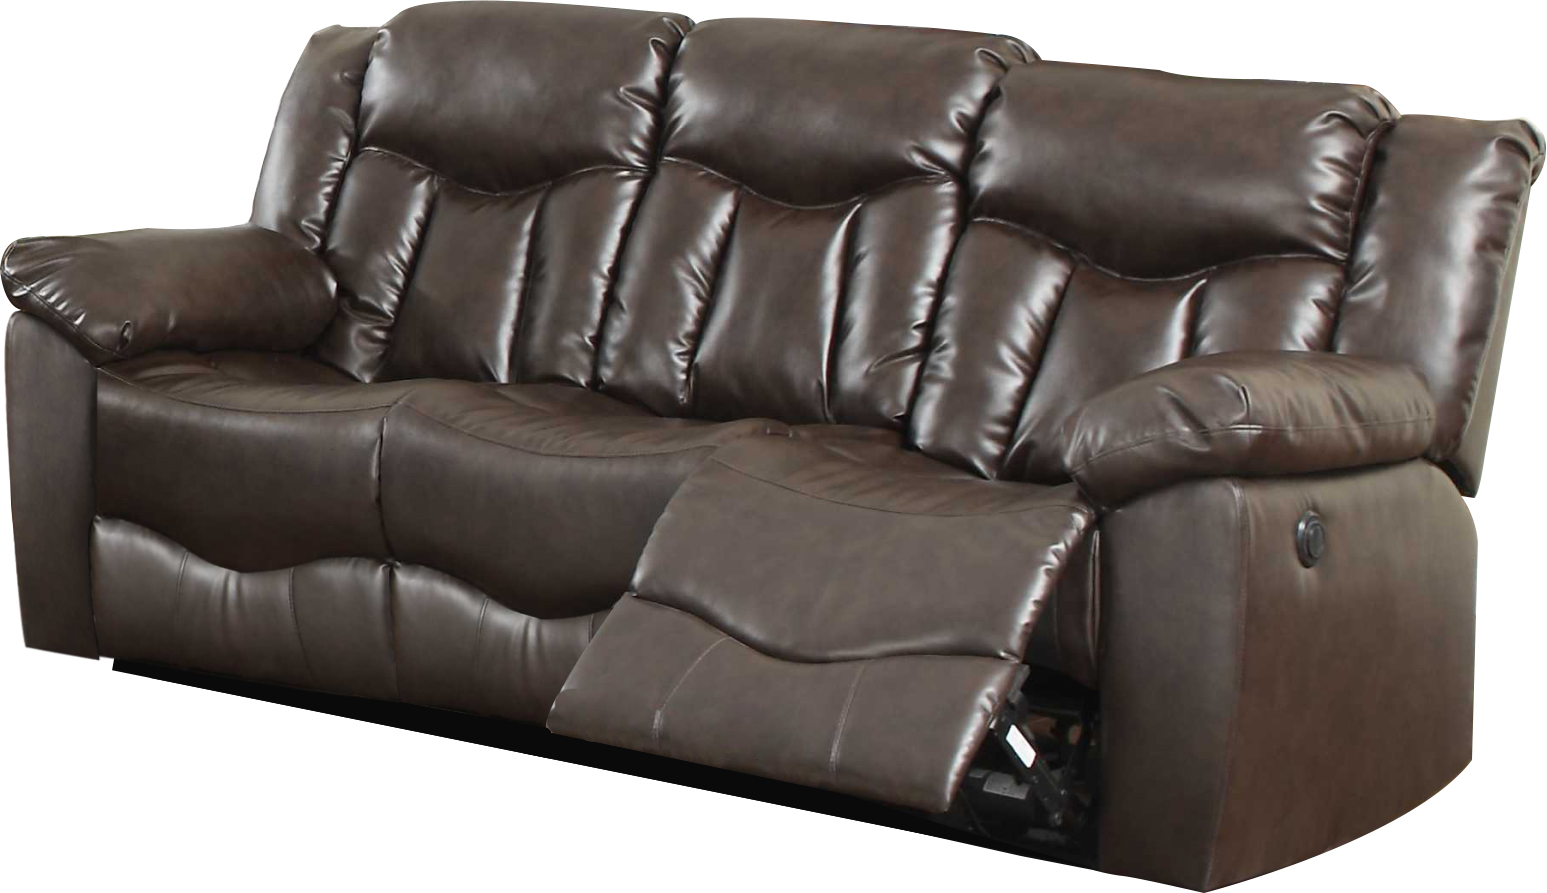 leonel signature james bonded leather motion sofa 2 reclining seats brown